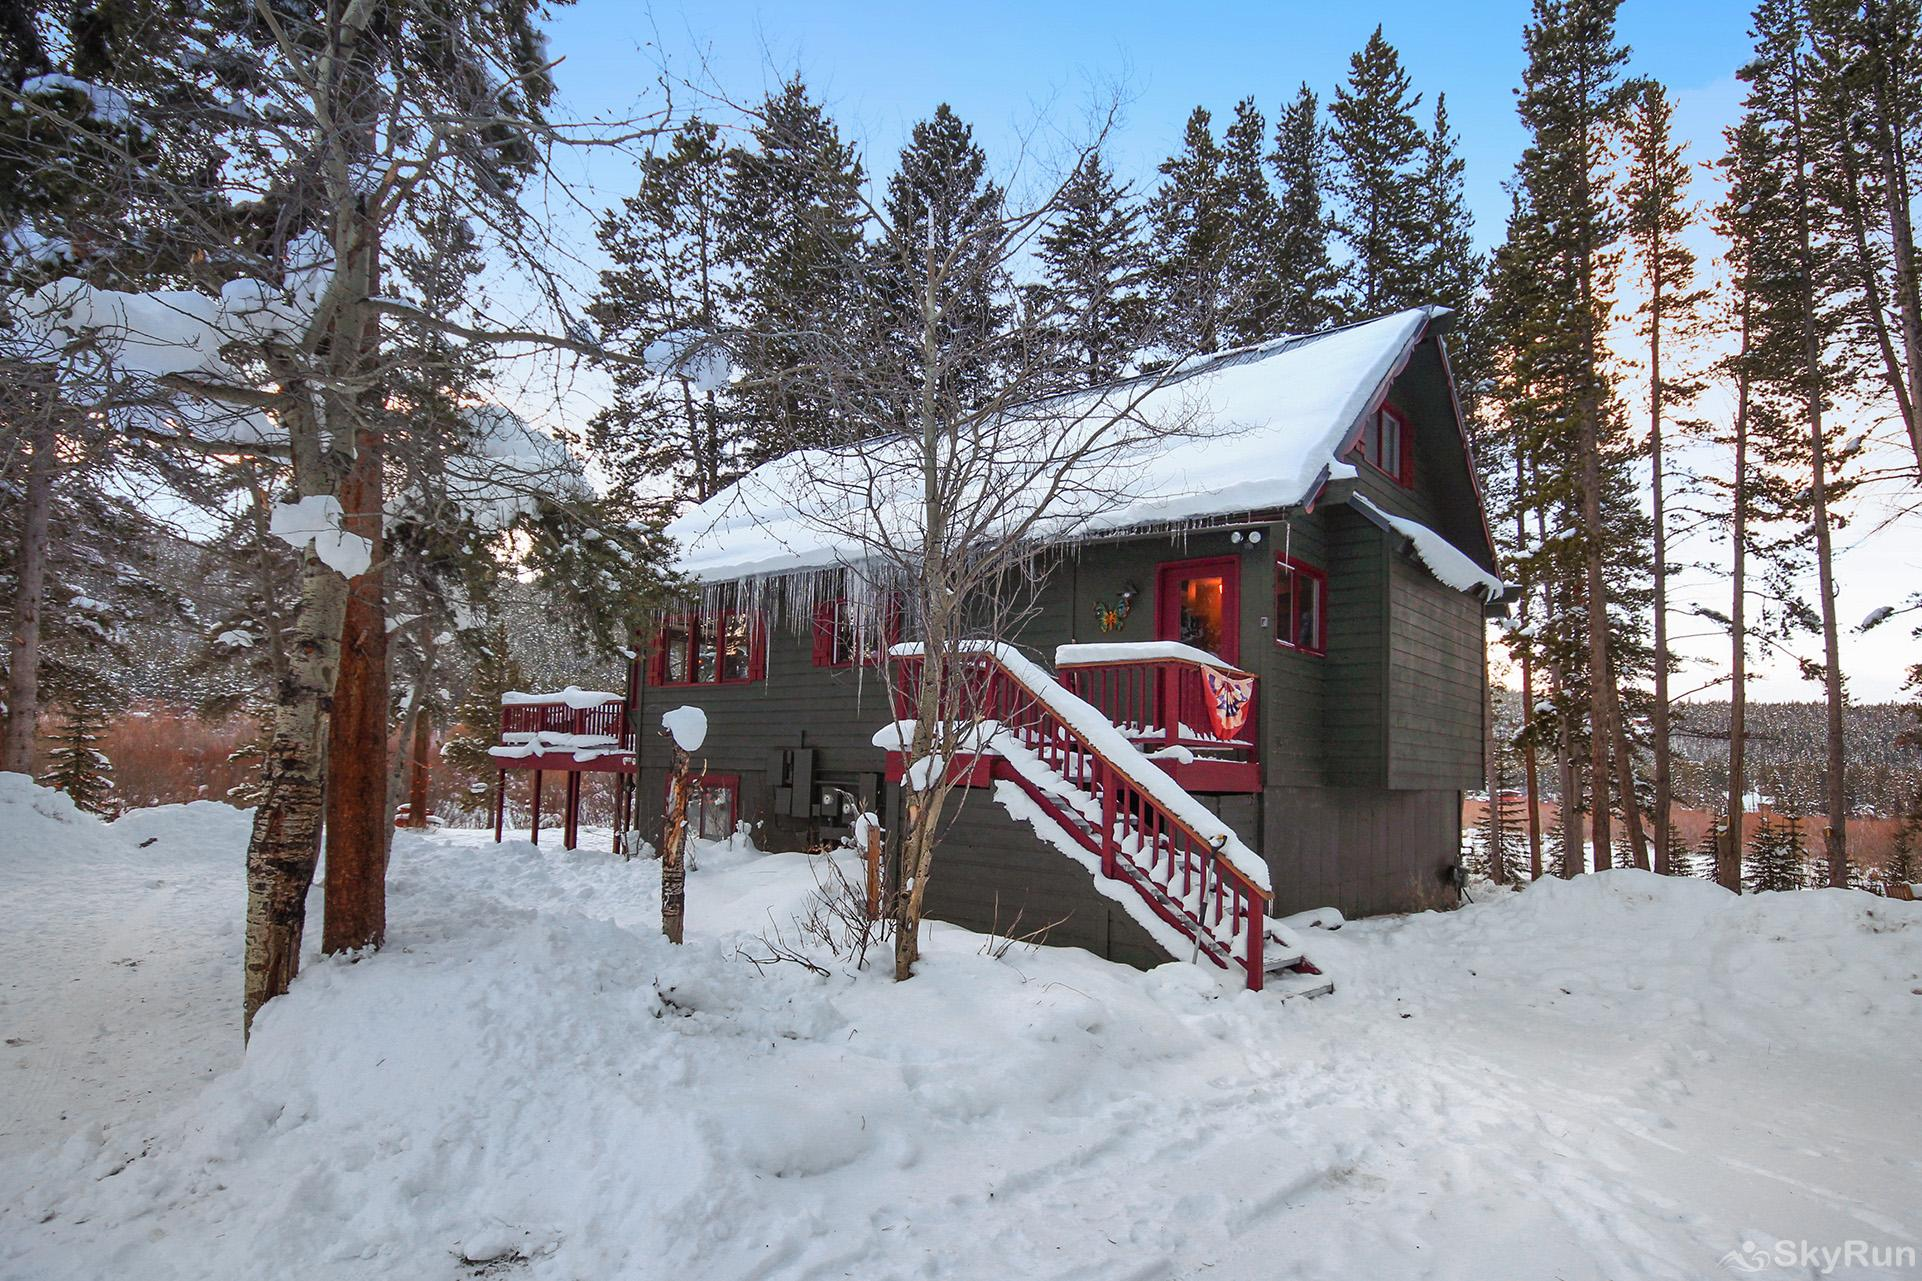 Whispering Pines Colorado cabin nestled away in the woods